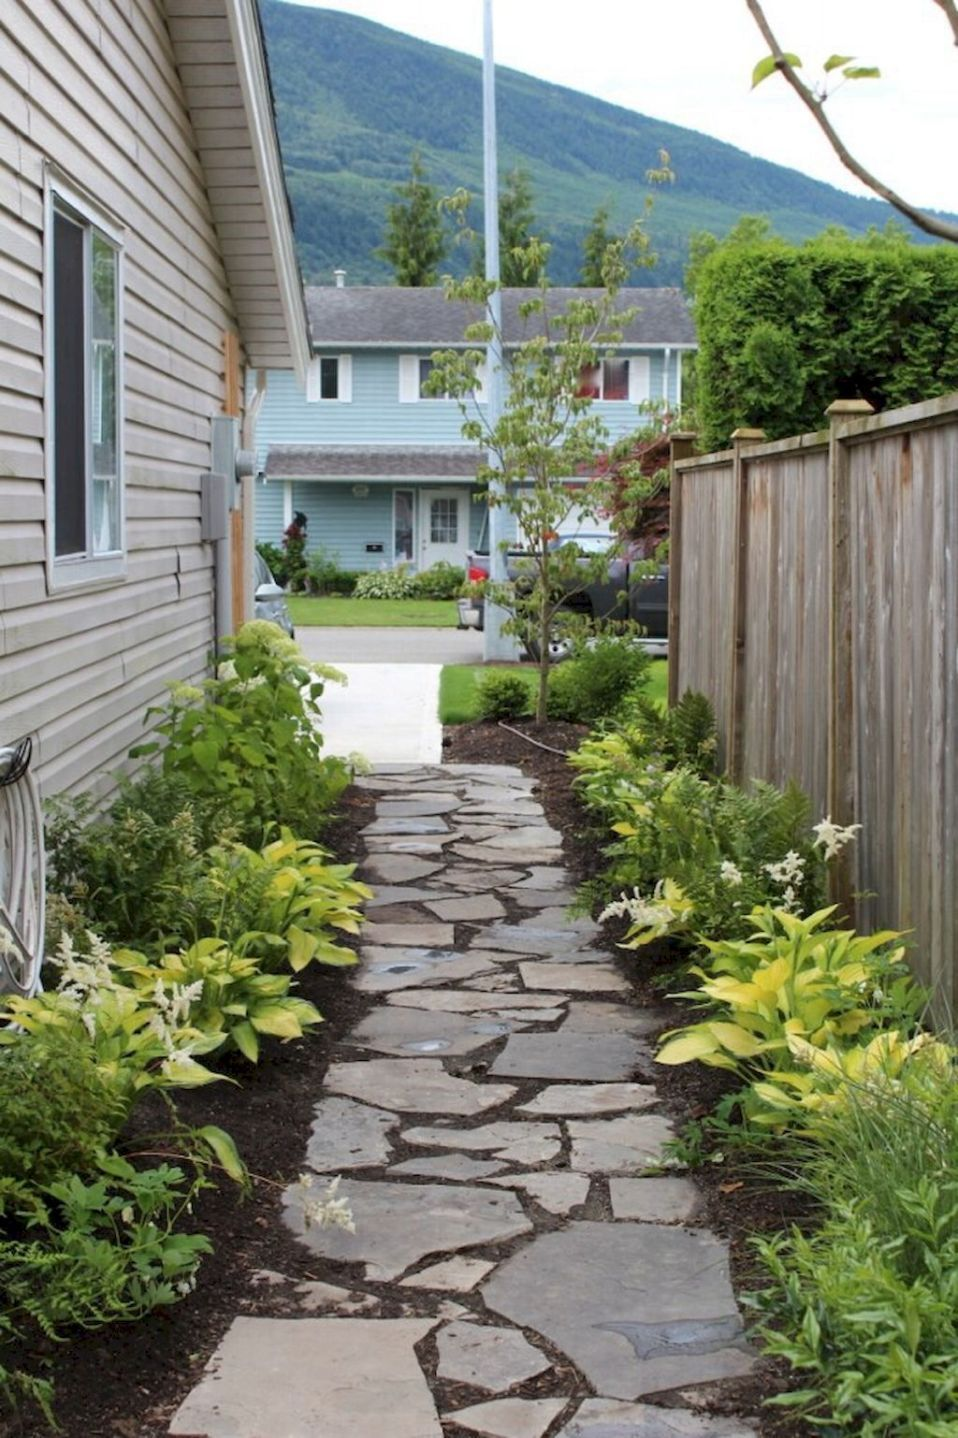 Enchanting Small Garden Landscape Ideas With Stepping Walk: Front Yard Entrance Path & Walkway Landscaping Ideas (7